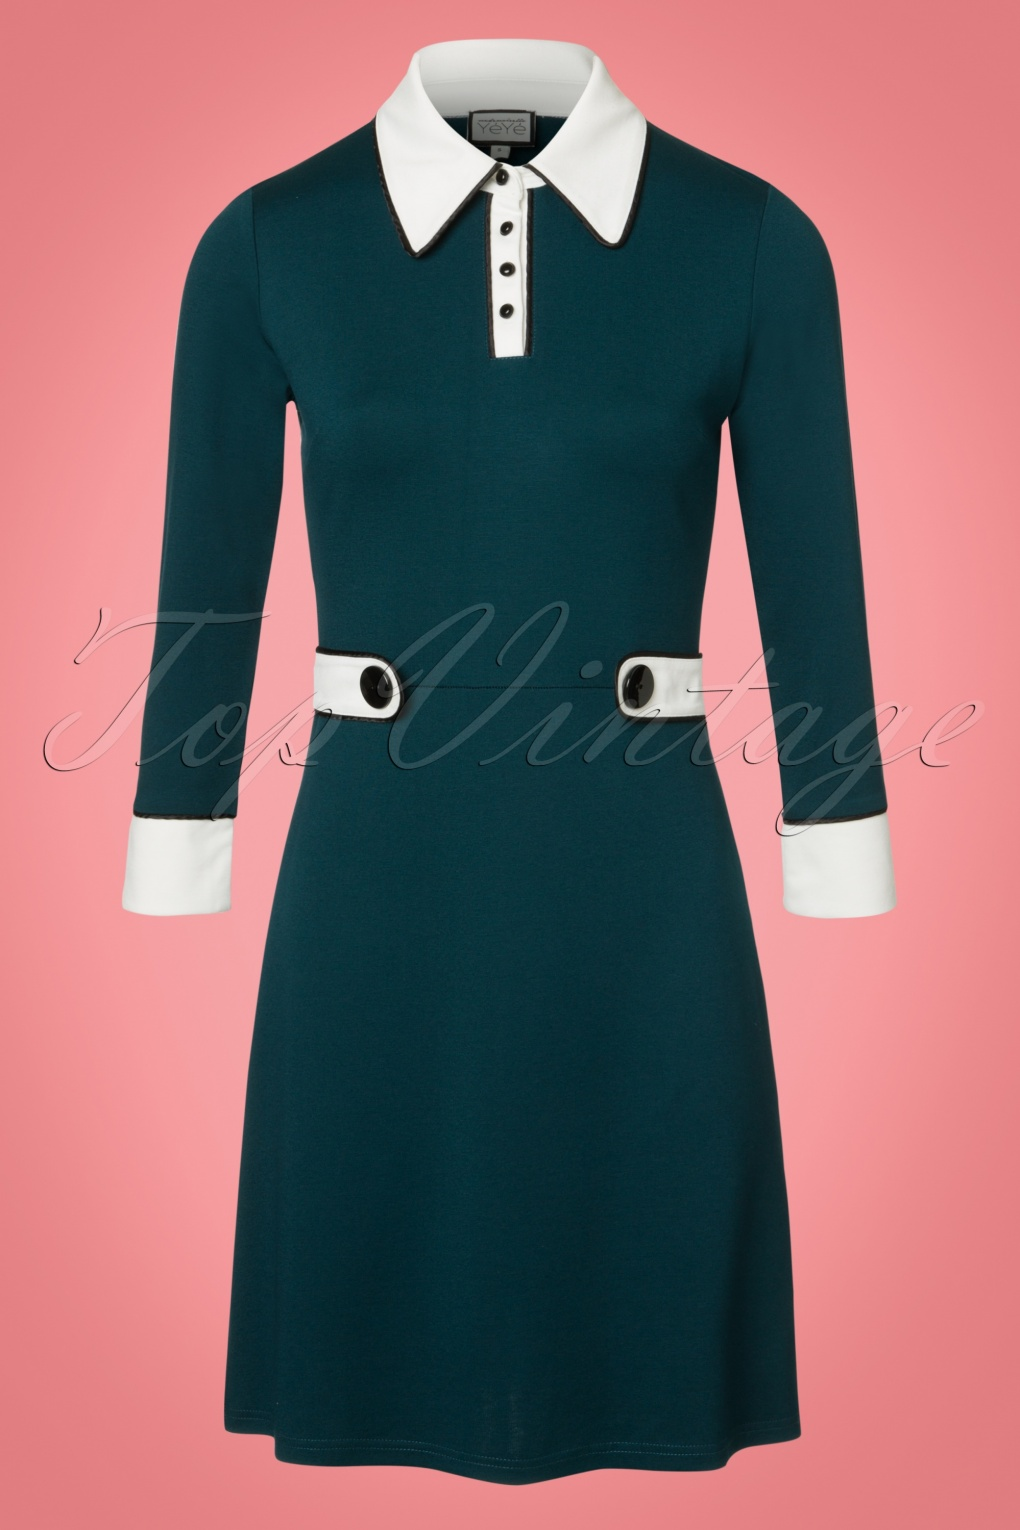 1960s Style Dresses- Retro Inspired Fashion 60s Nathalie Dress in Teal £95.50 AT vintagedancer.com